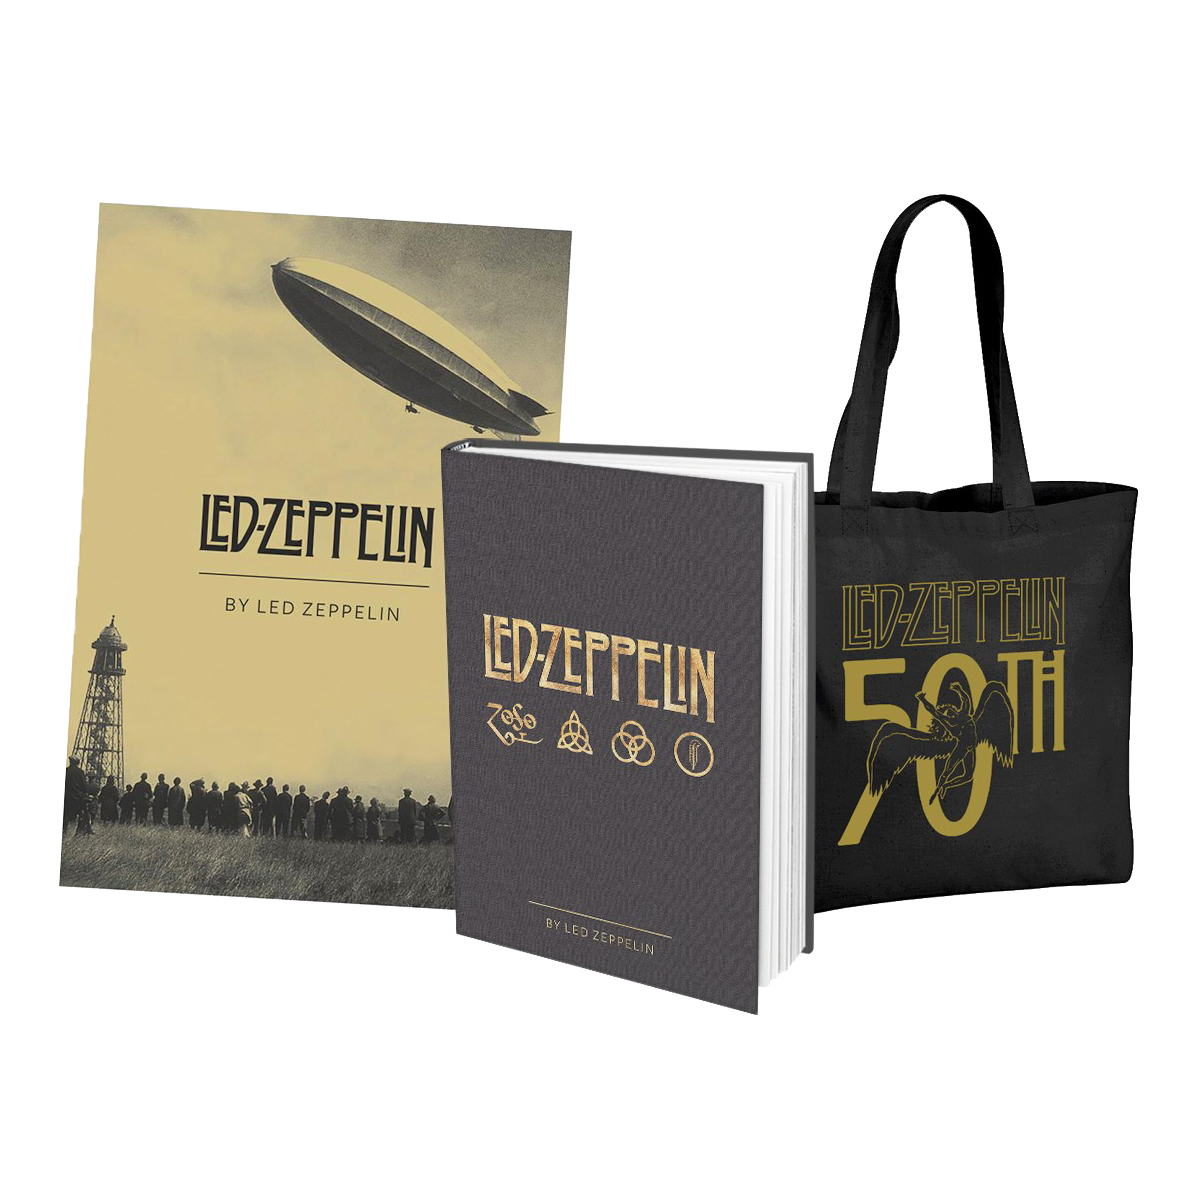 Led Zeppelin – By Led Zeppelin – Hardback Book + Bag and Poster Bundle - Led Zeppelin US